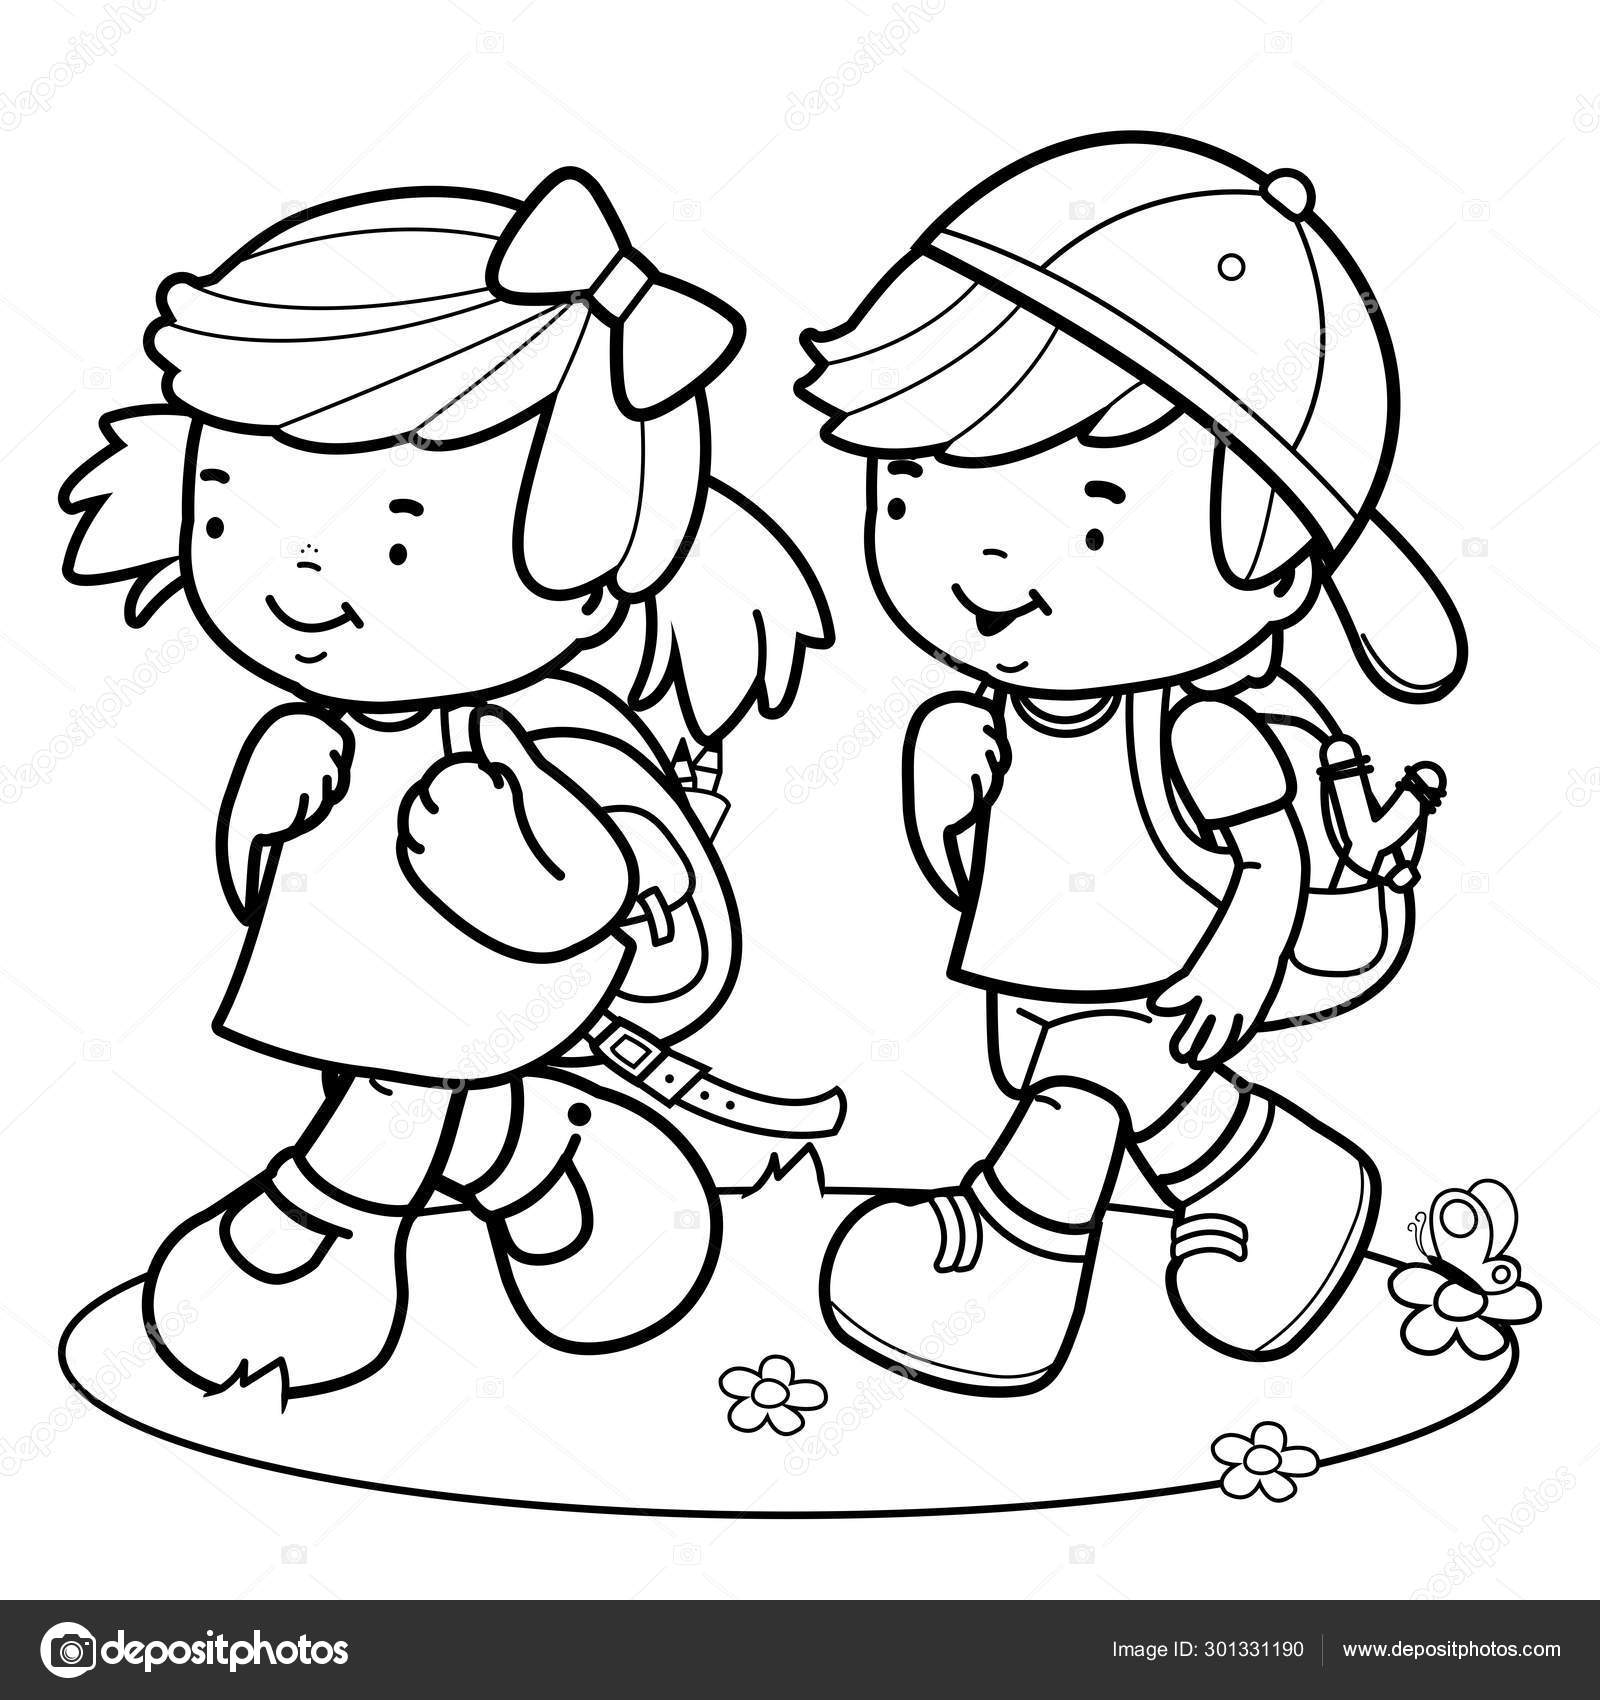 student coloring clipart young students coloring page stock illustration clipart student coloring